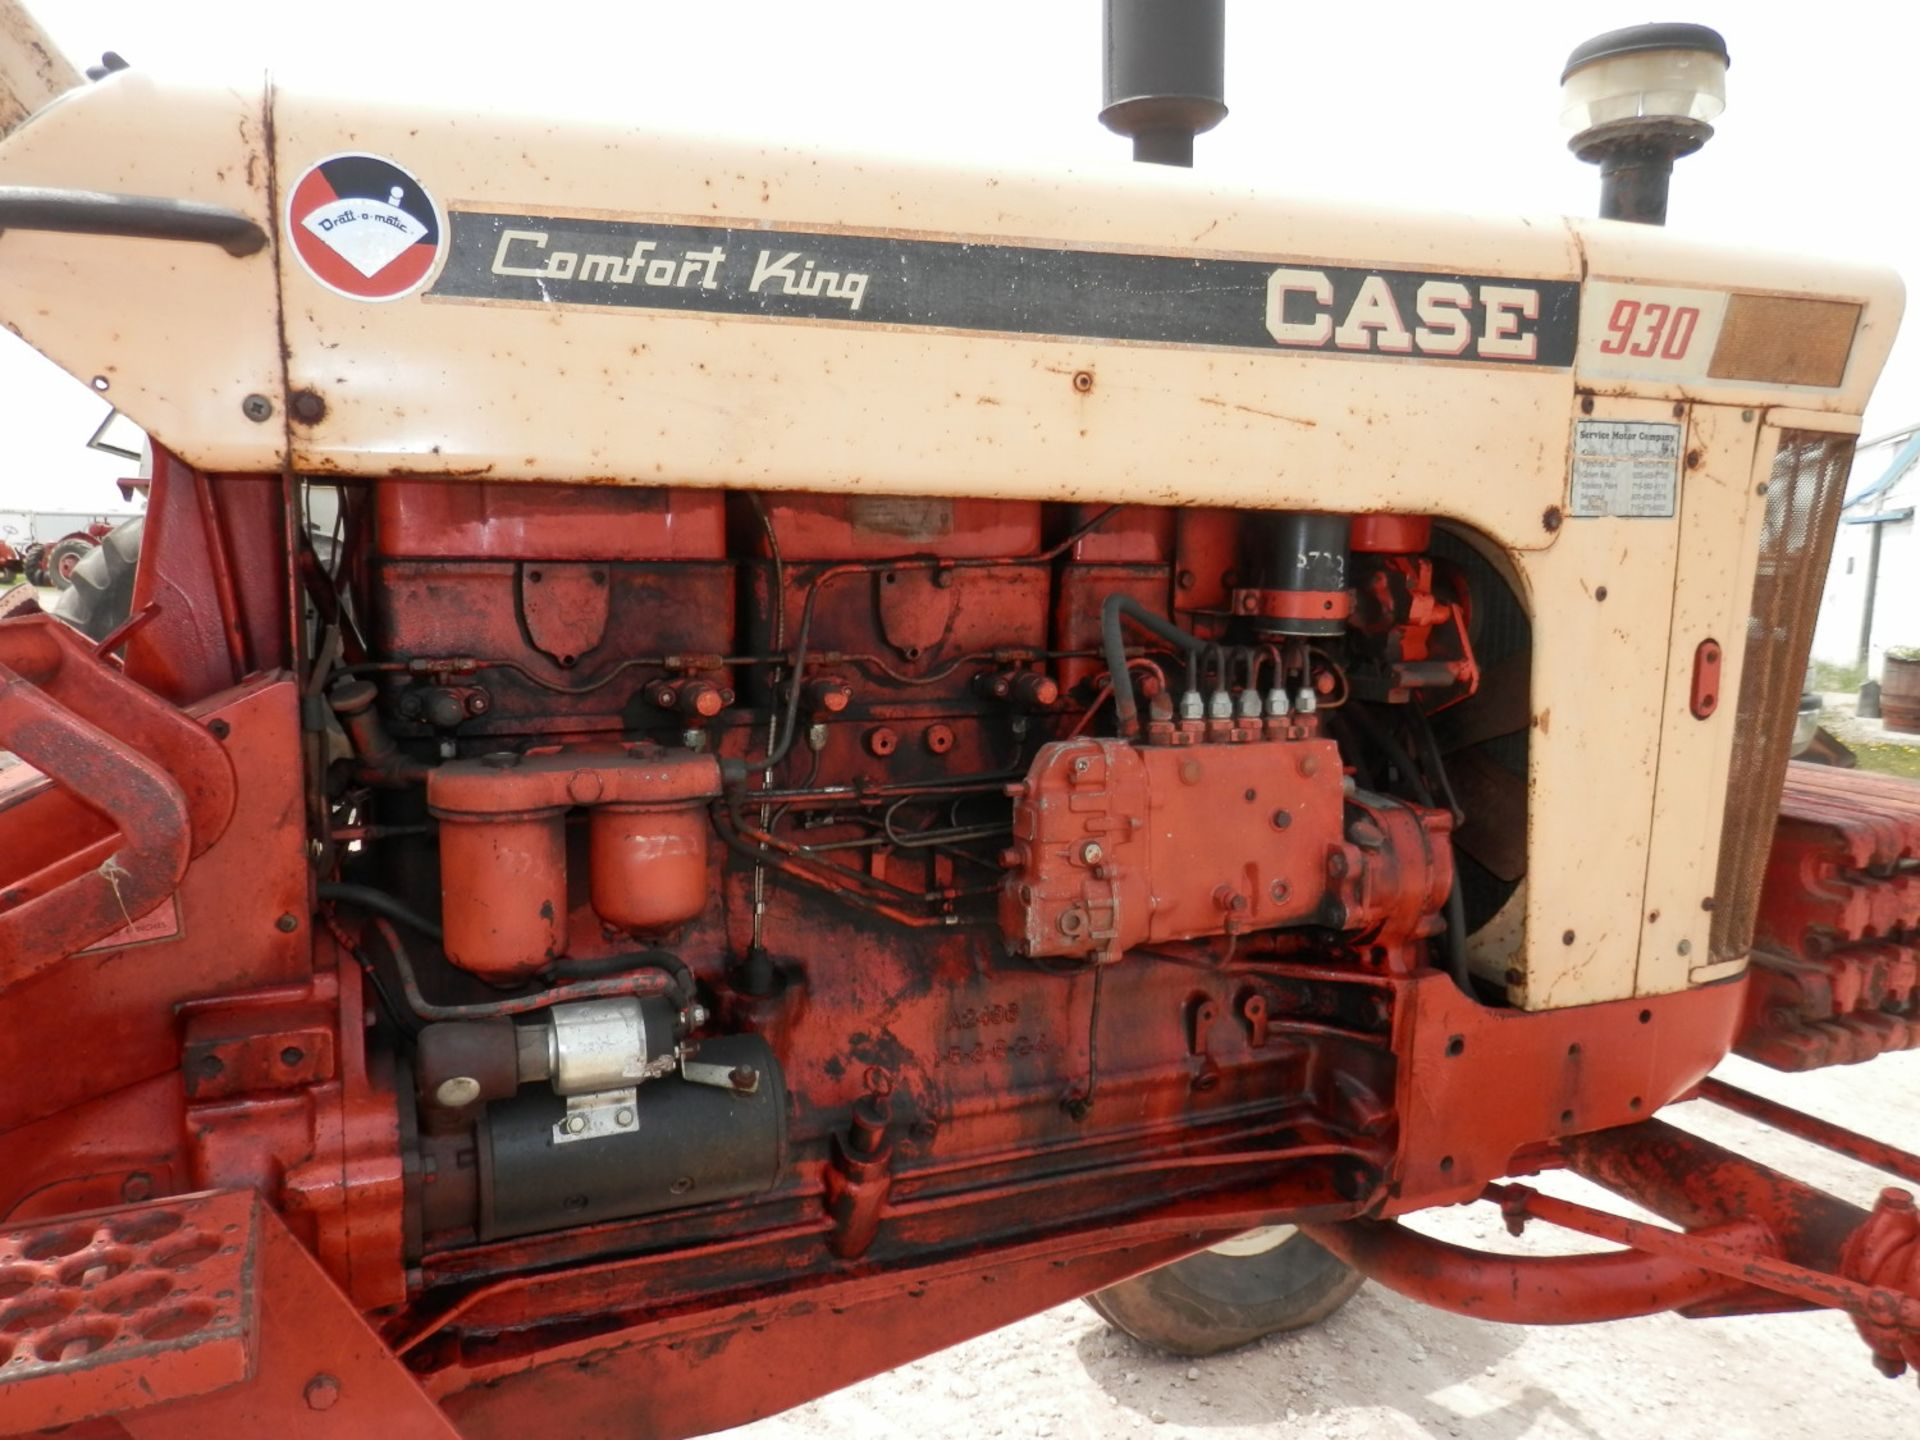 CASE 930 COMFORT KING TRACTOR - Image 7 of 9